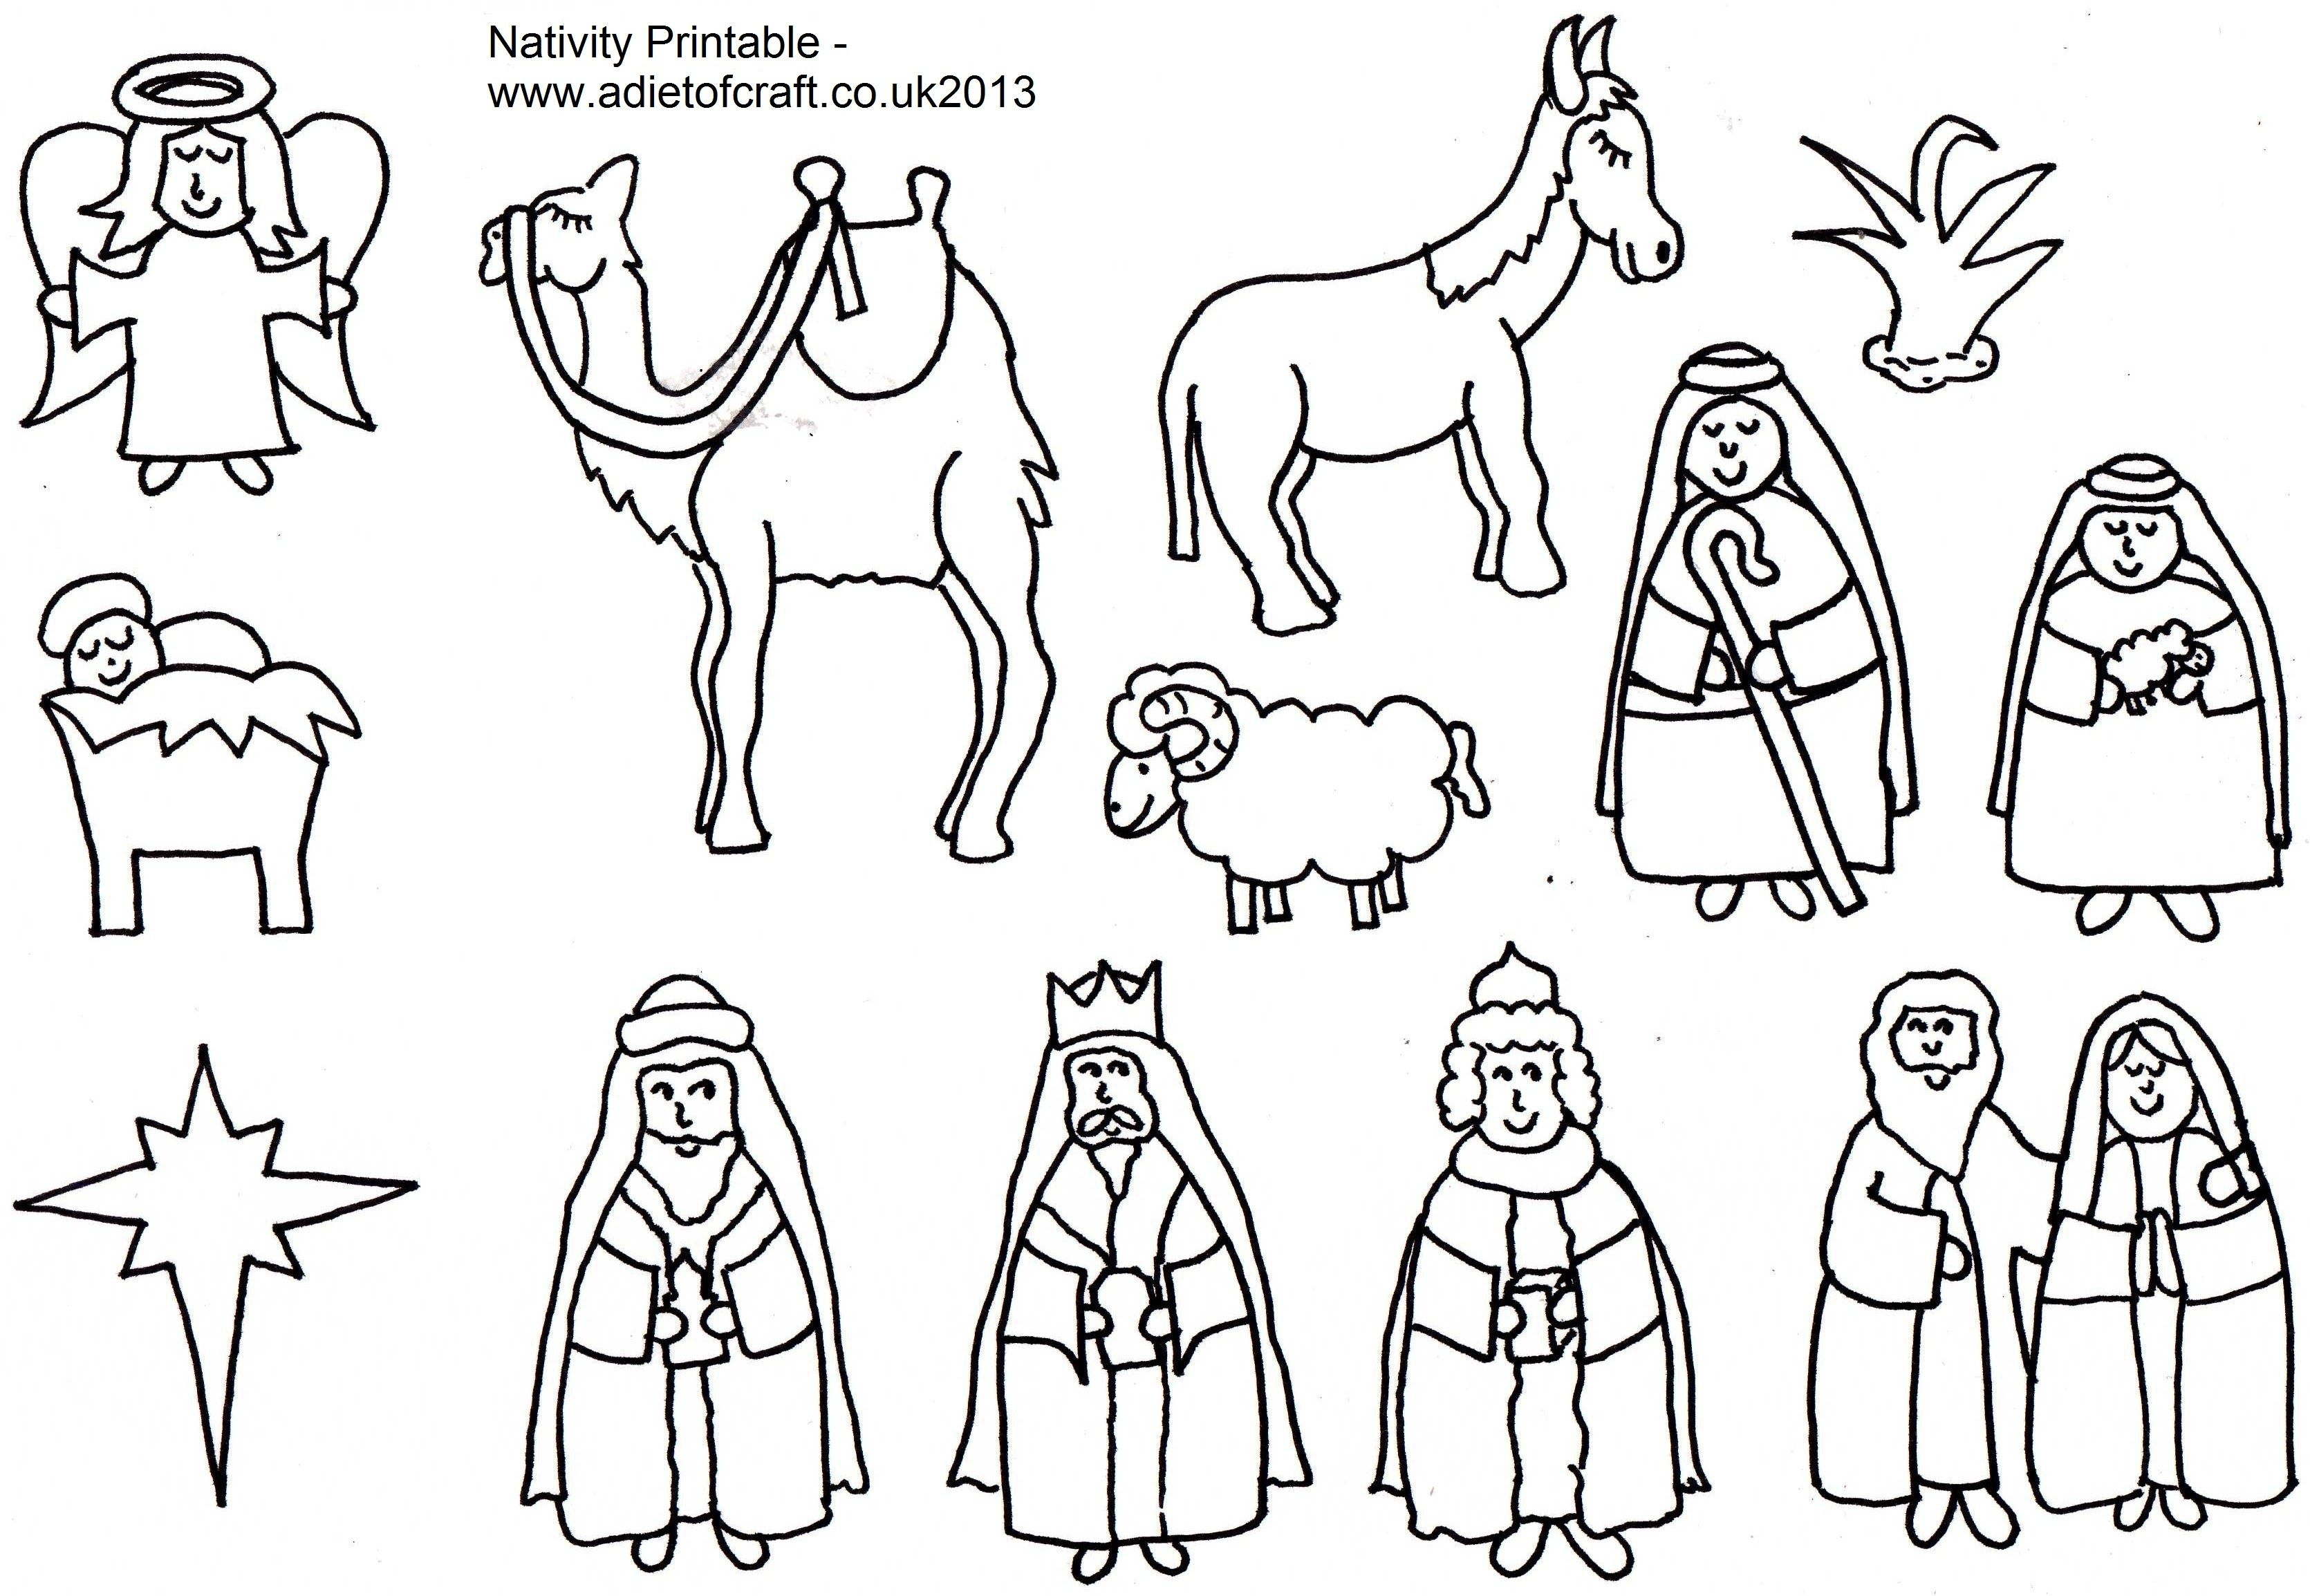 Adult Coloring Pages Of The Nativity Free In Nativity Coloring Pages - Free Printable Christmas Story Coloring Pages